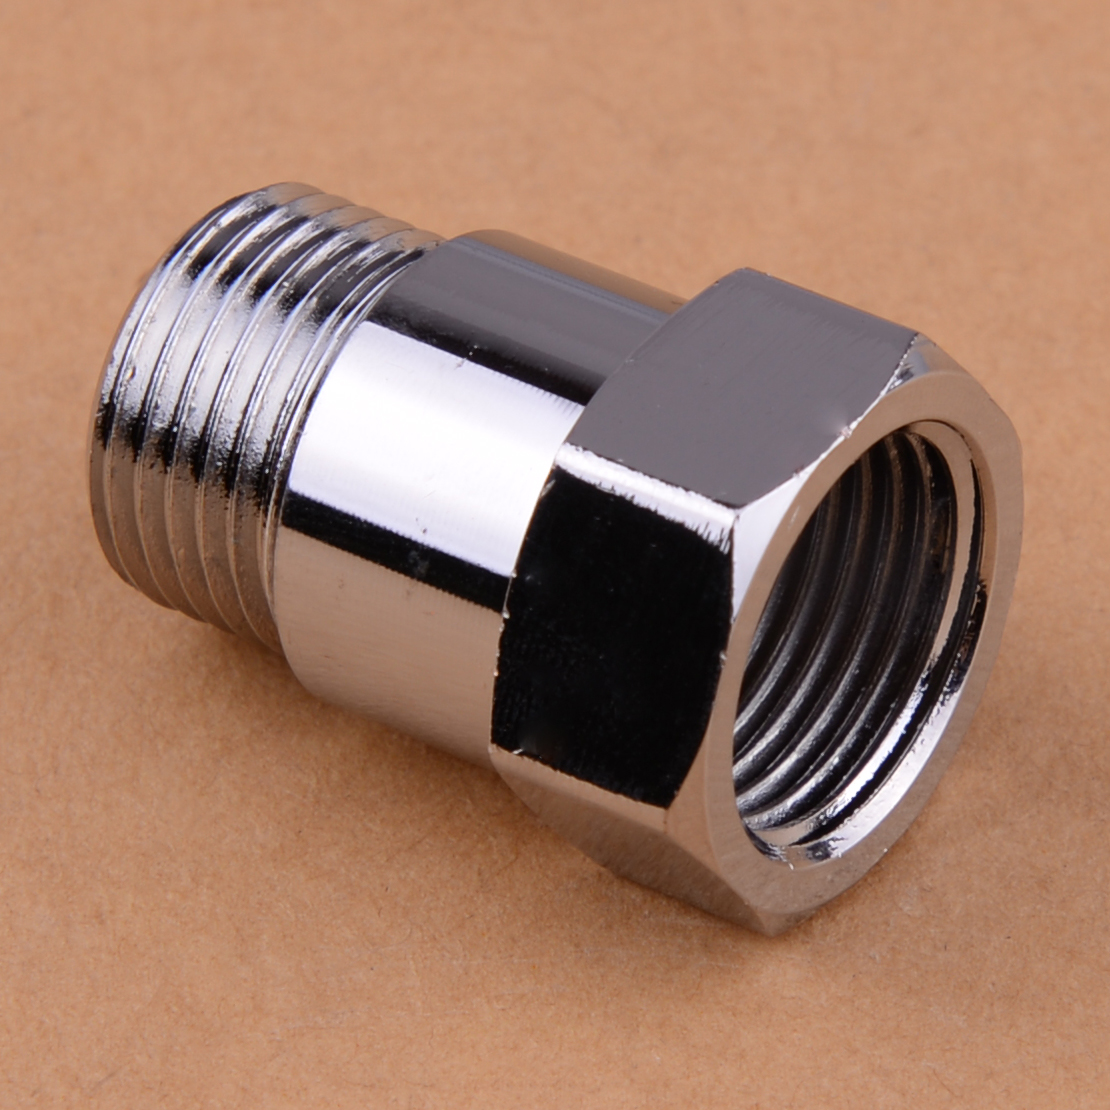 CITALL New Car Auto Silver <font><b>M18</b></font> <font><b>x</b></font> <font><b>1.5</b></font> HHO O2 Oxygen Sensor Extender Adapter Fitting Eliminator Test Pipe Extension Spacer Bung image